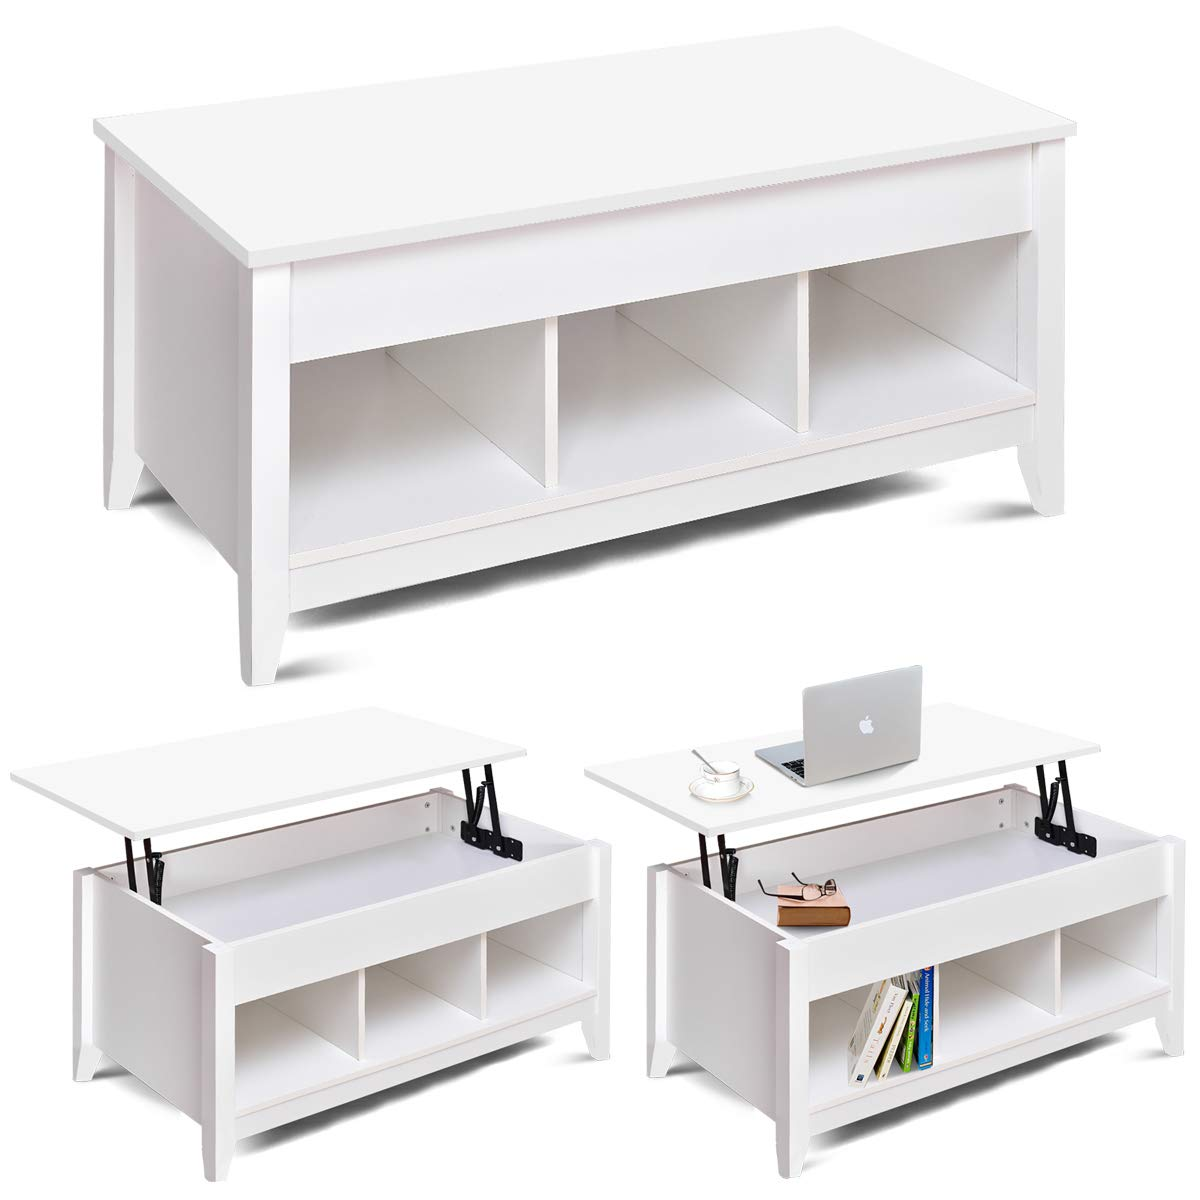 COSTWAY Lift Up Top Coffee Table with Storage & Shelf, Liftable Tabletop, Spring Hinges, 4 Compartments, Smooth Surface, E1 MDF, 105X50X50CM for Living Room, Bedroom, Home, Office (White)